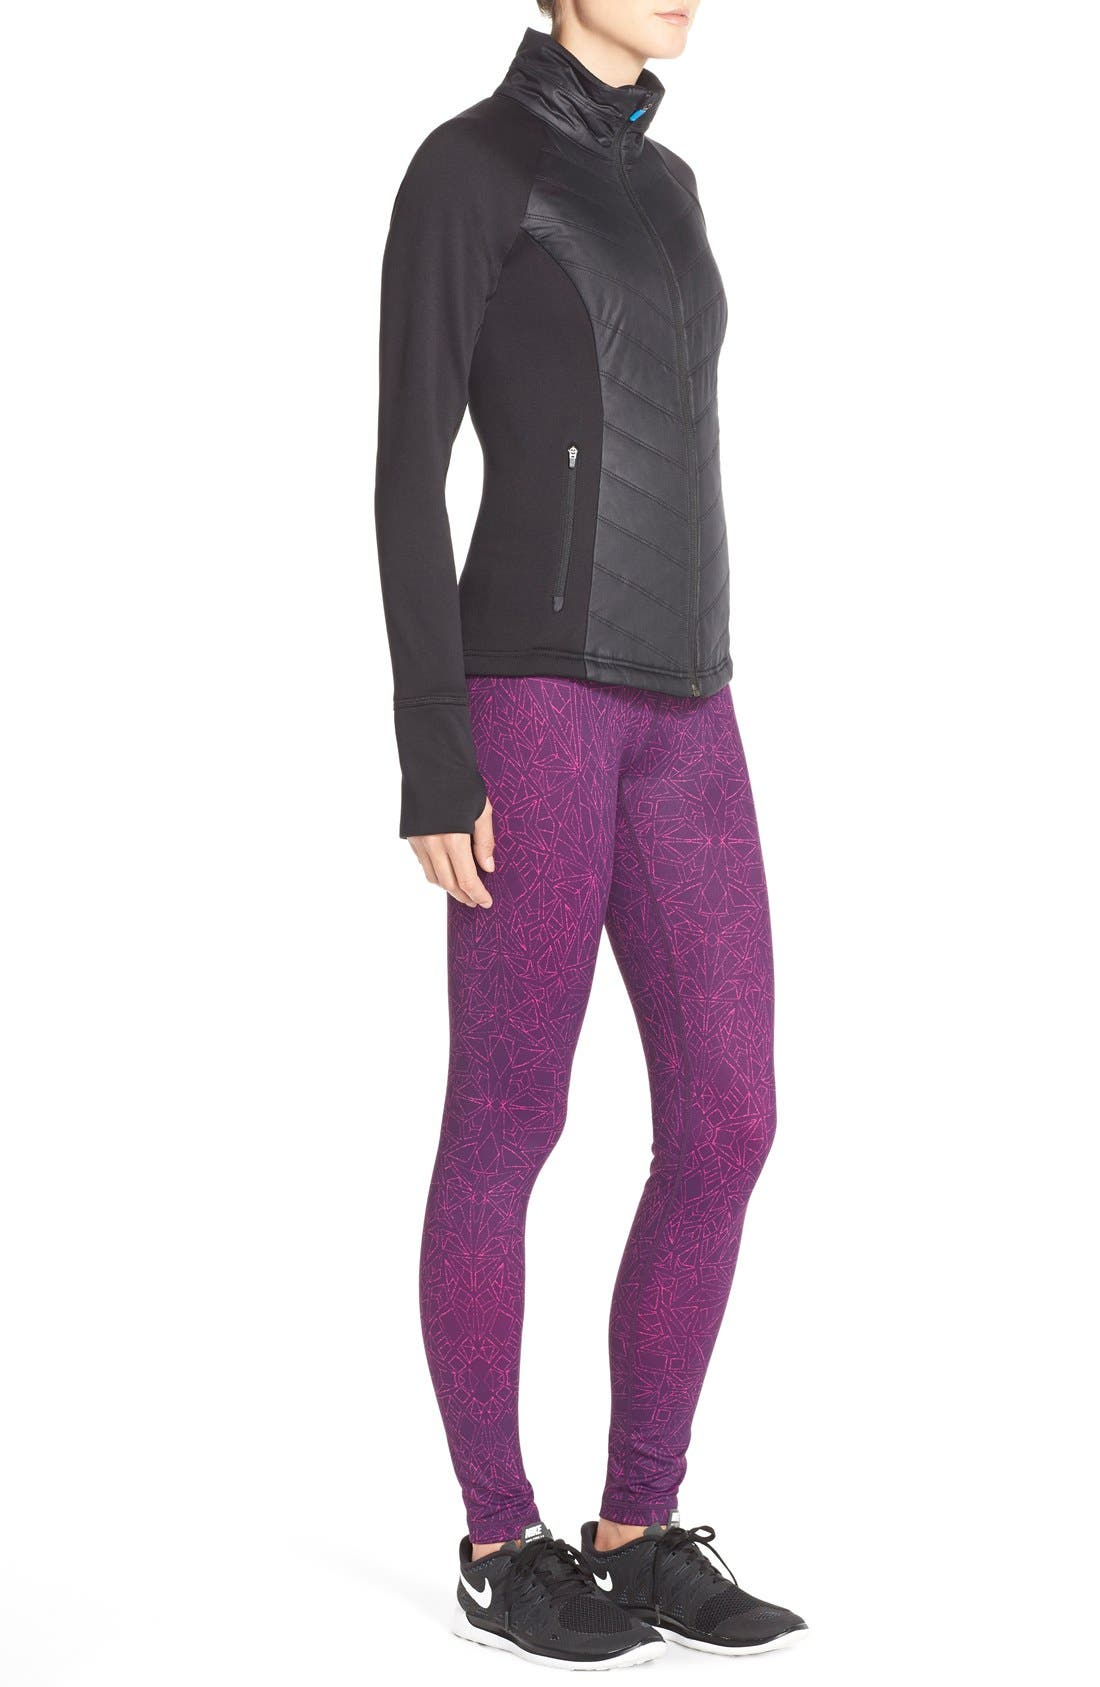 Zelfusion Reflective Quilted Jacket,                             Alternate thumbnail 9, color,                             001